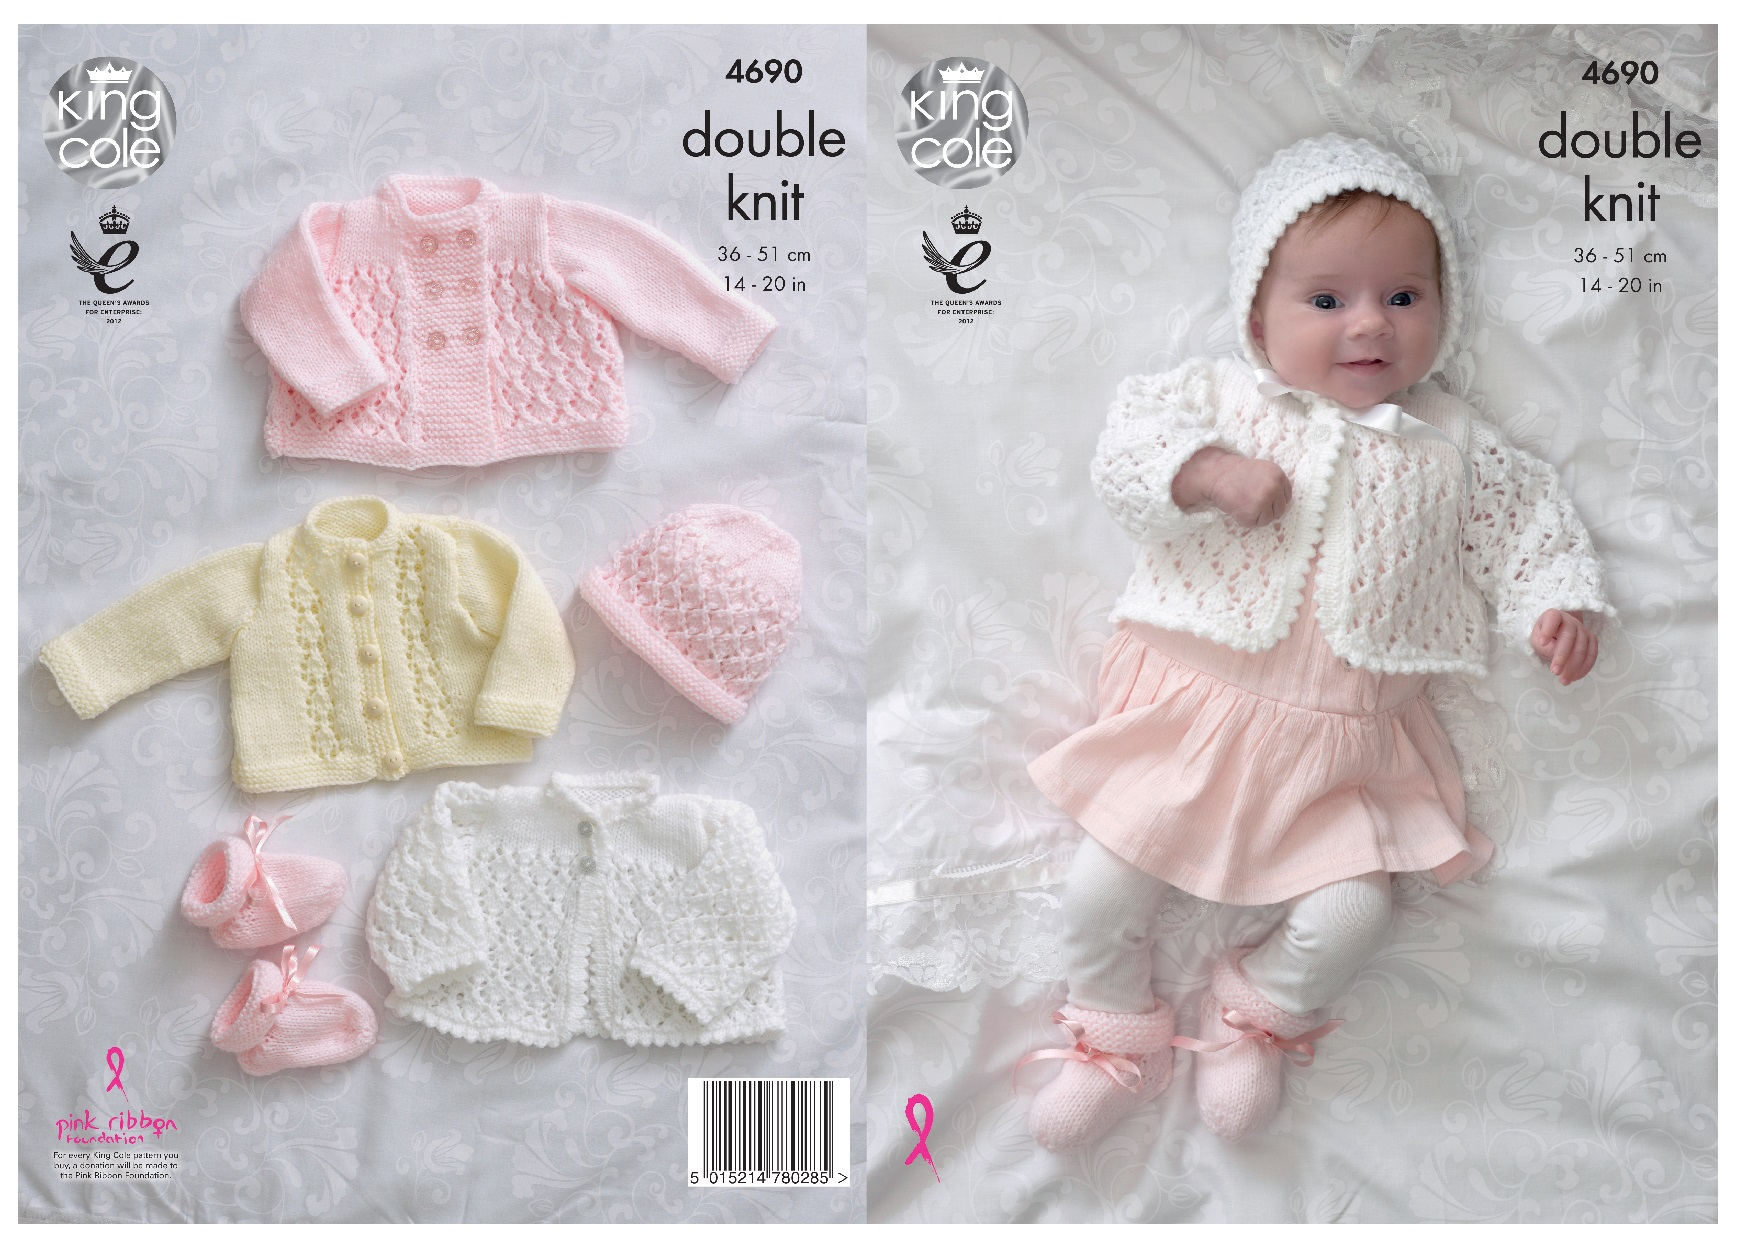 e3841af2df66 Knitting Pattern Baby Matinee Jacket Cardigan Bonnet Bootees King ...